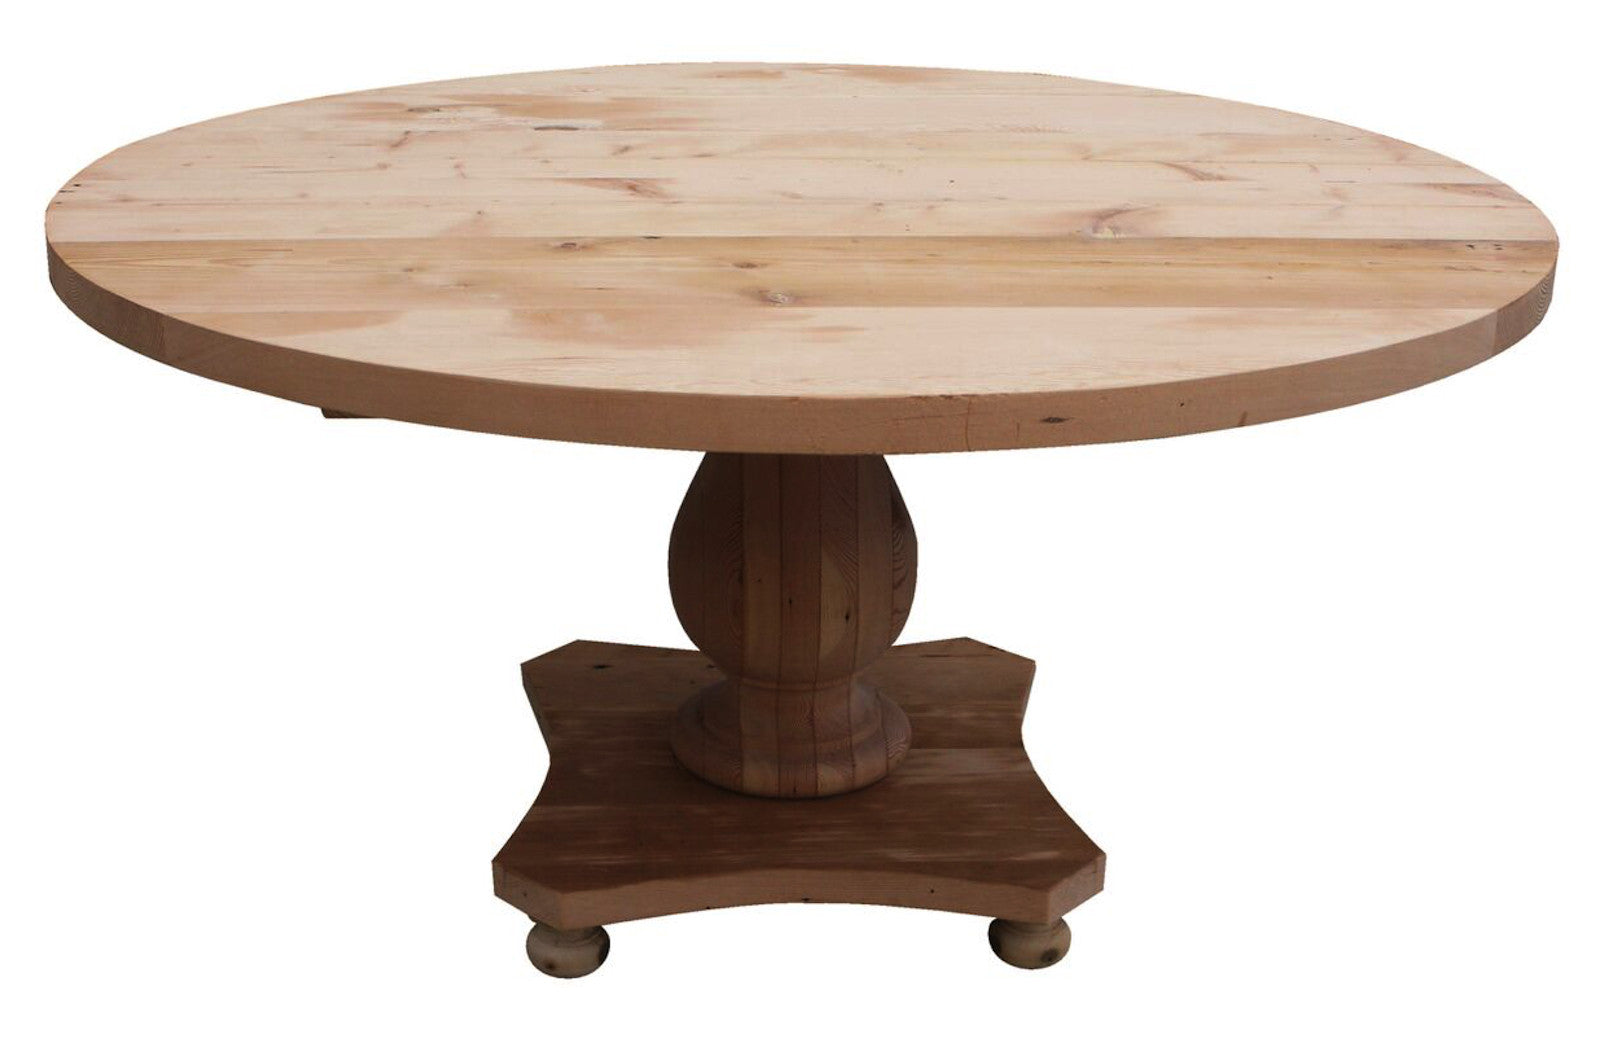 Round Pedestal Salvaged Wood Dining Table Round Pedestal Salvaged Wood  Dining Table